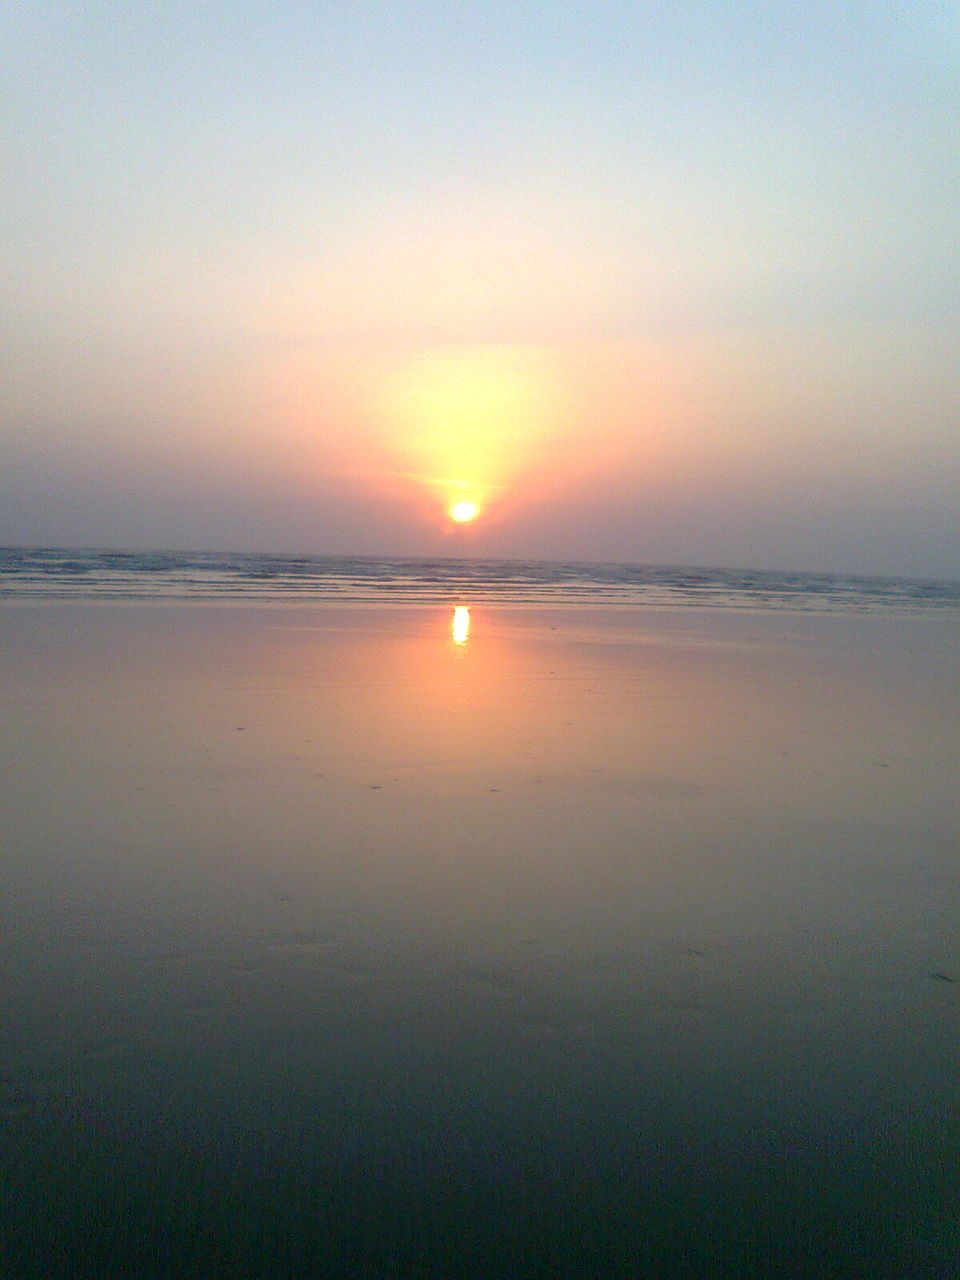 Photos of Sunrise @Nagaon beach 1/10 by Swetha Rajagopal Anand